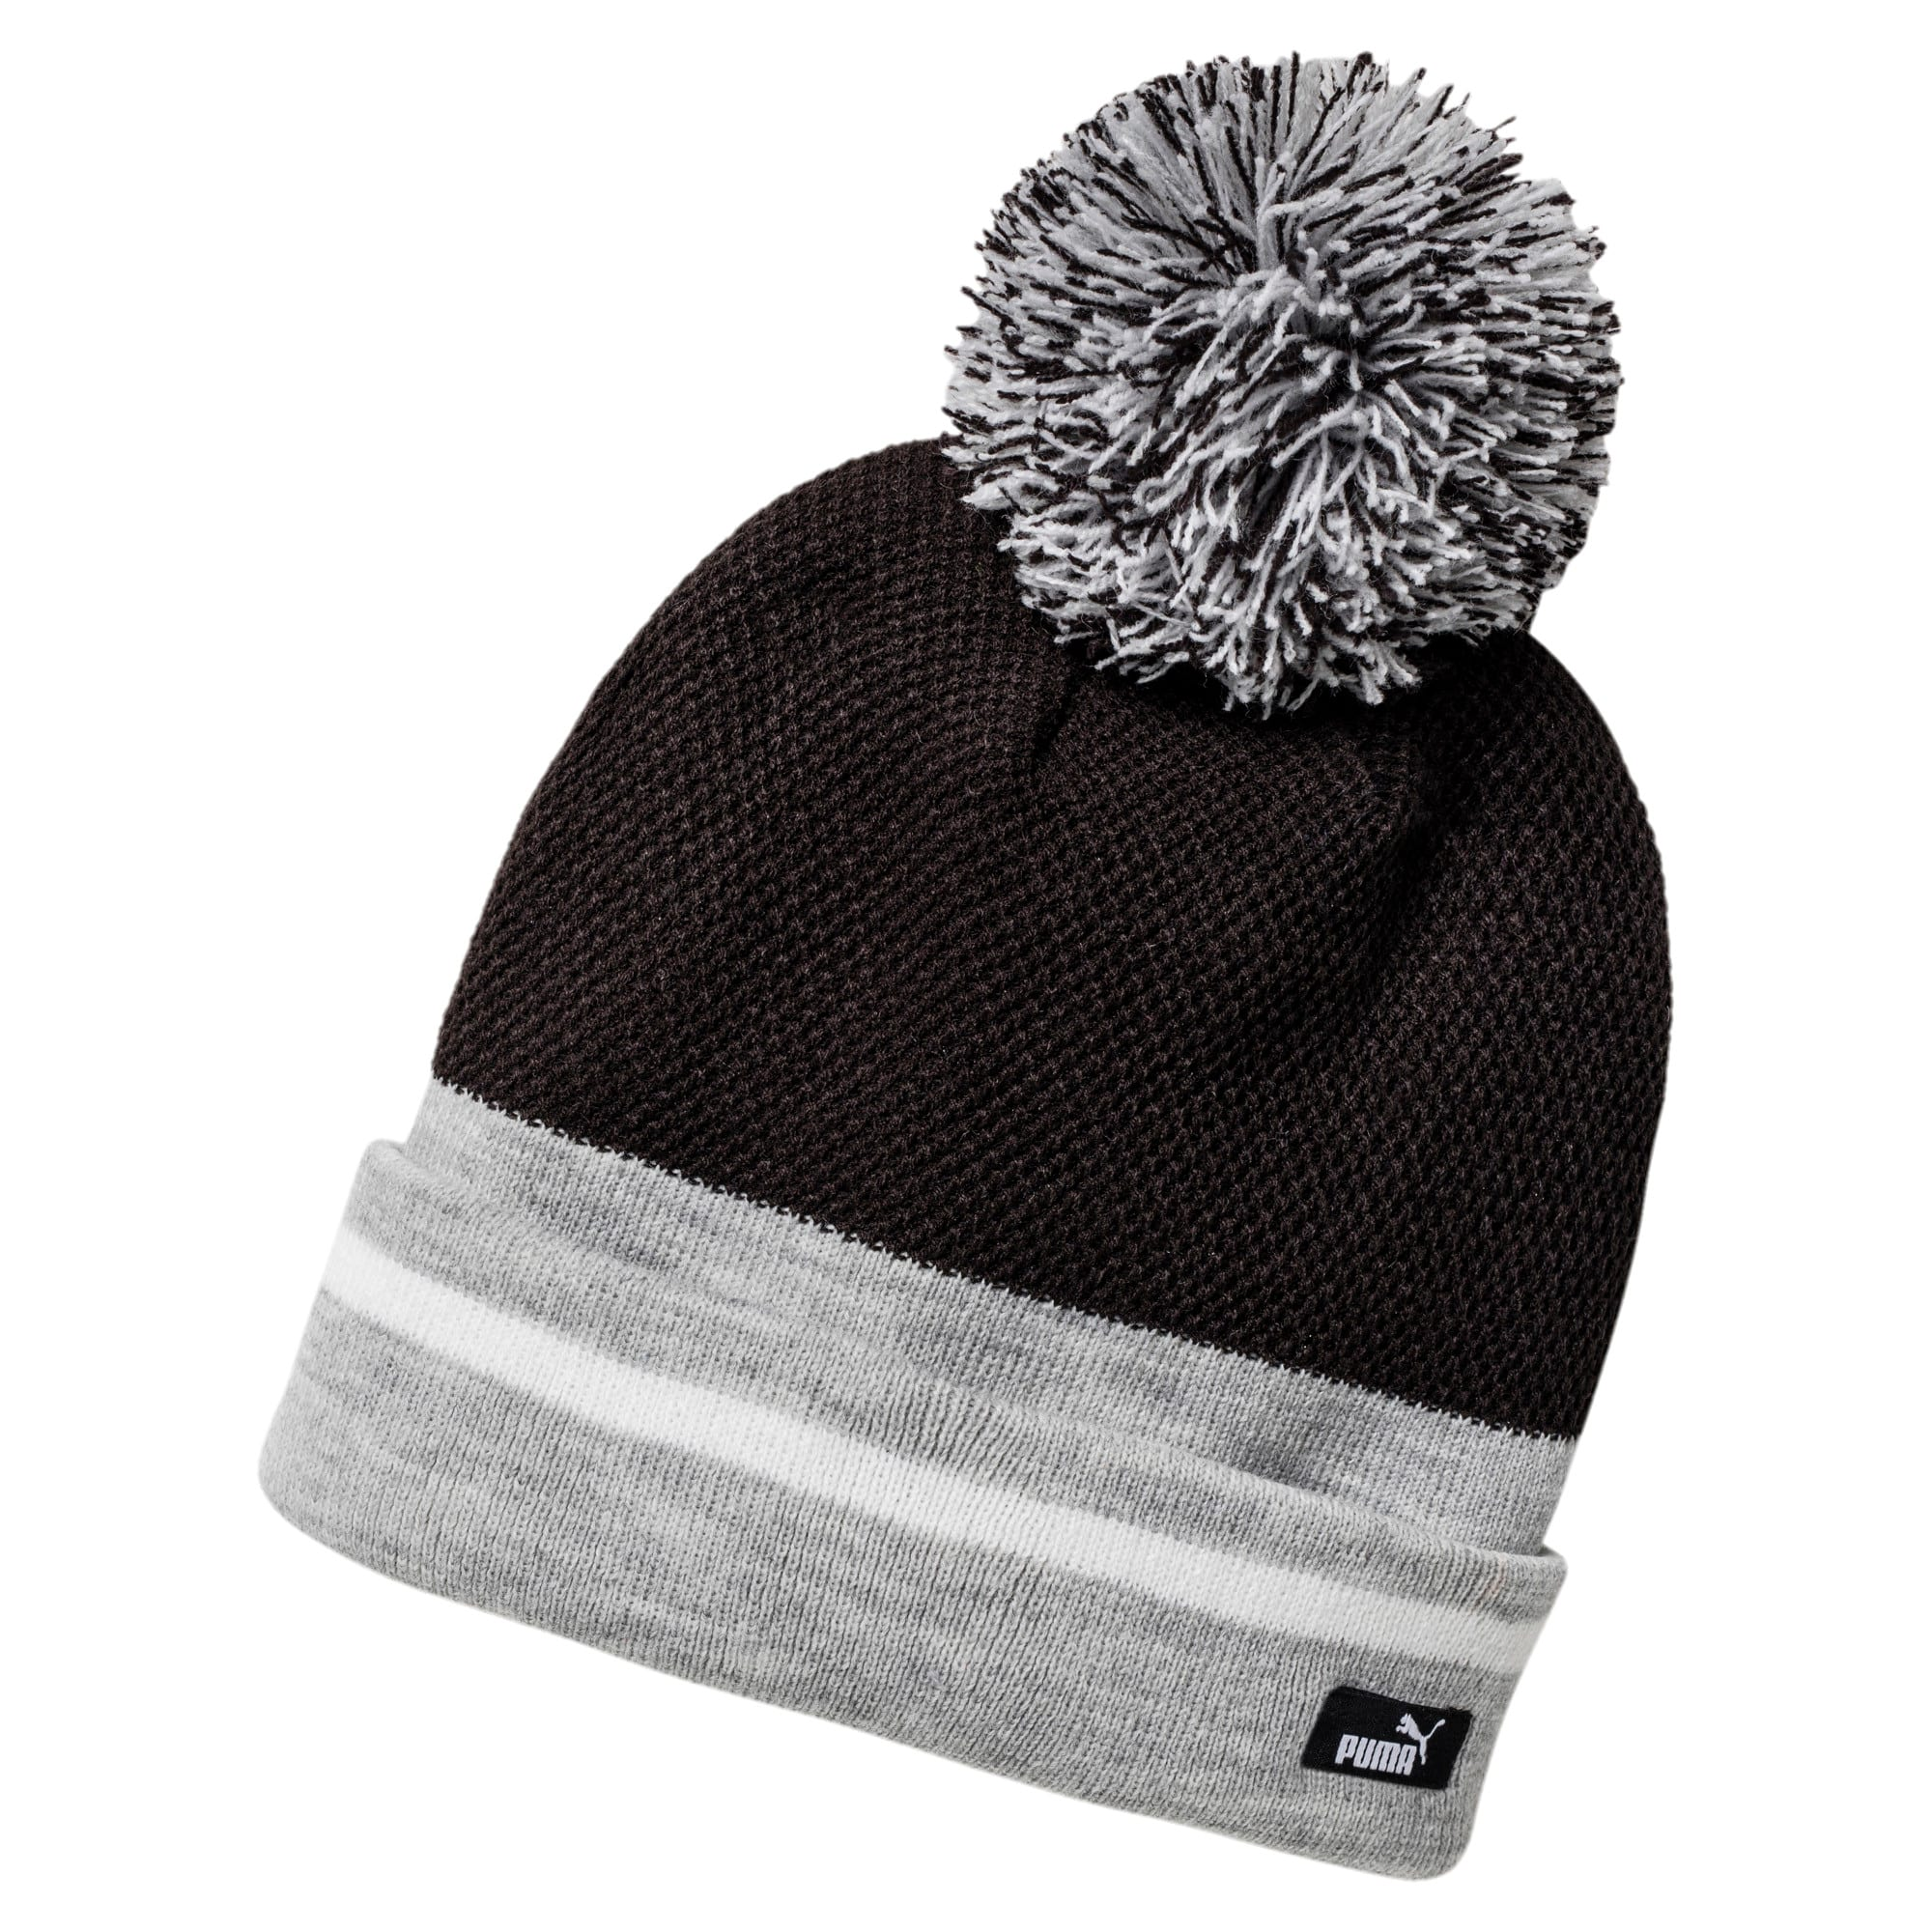 Thumbnail 1 of Women's Pom-Pom Beanie, Puma Black-L.Gray hthr, medium-IND